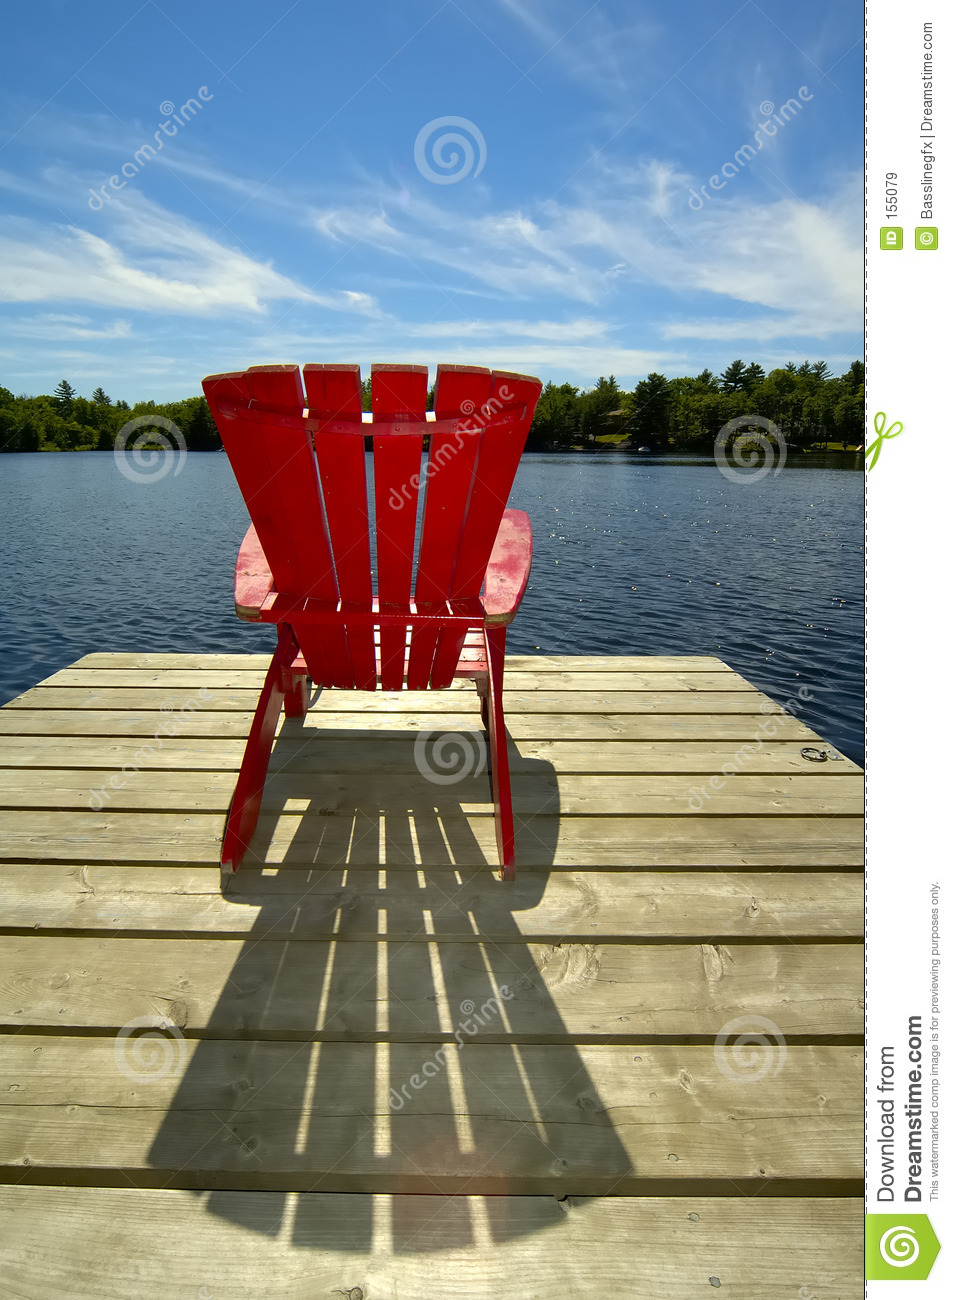 Red Chair On Deck Vertical Royalty Free Stock Images - Image: 155079